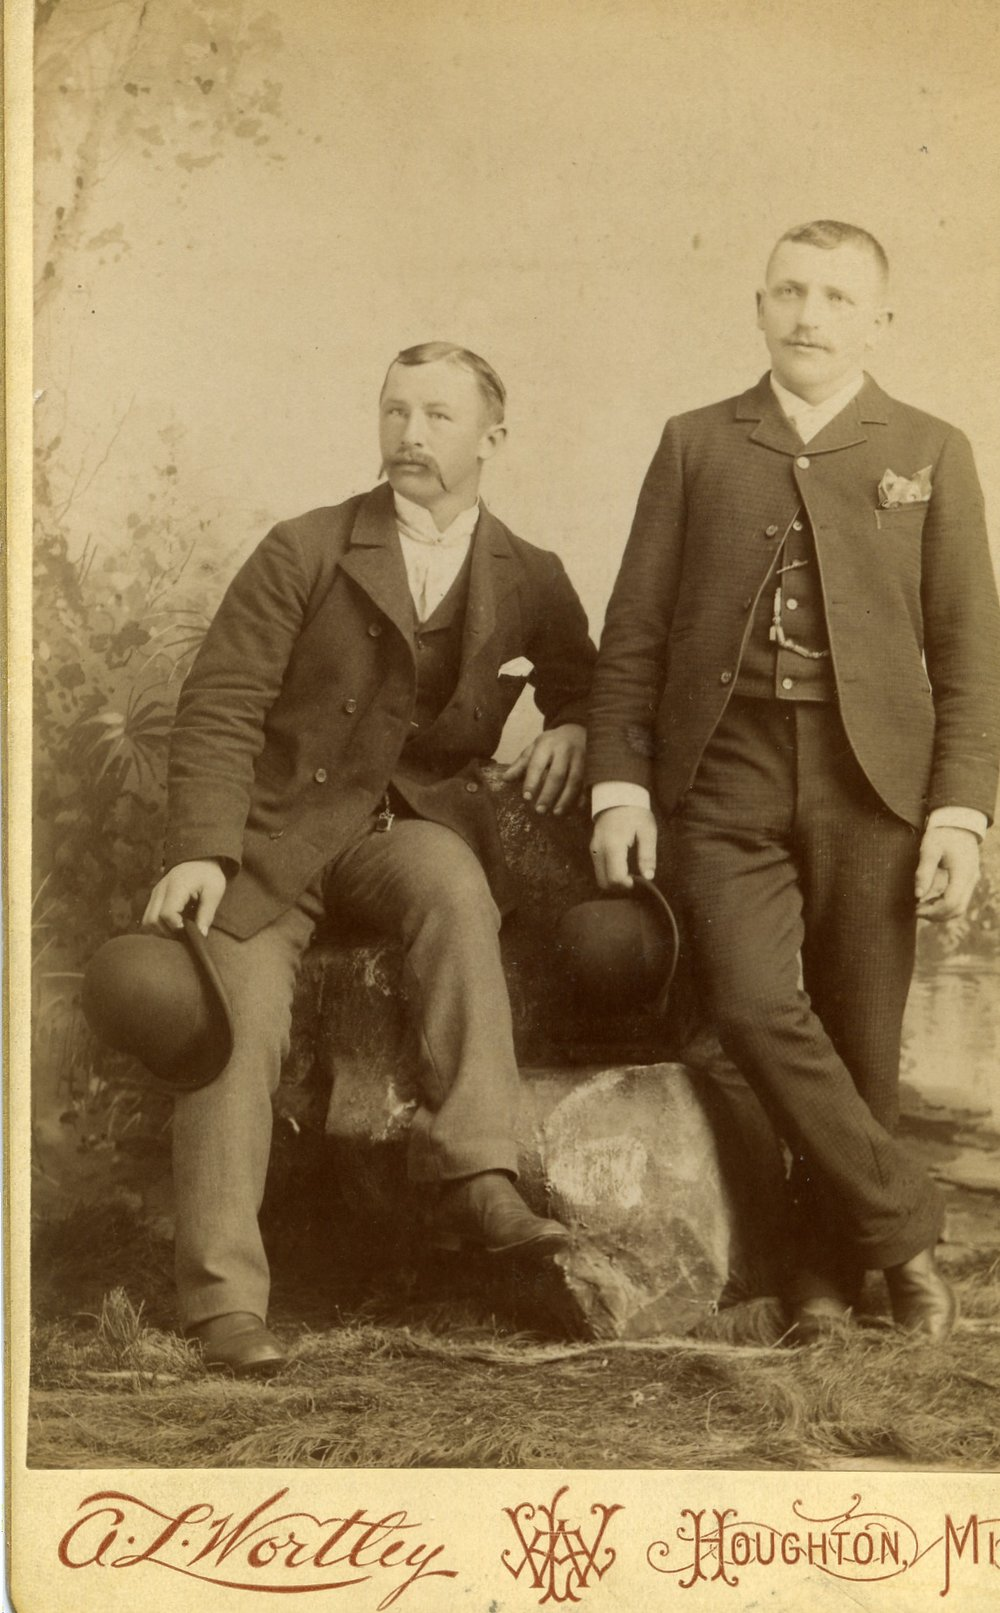 Peter Heinrich Ratz (1867-1934) on right with unidentified man on the left